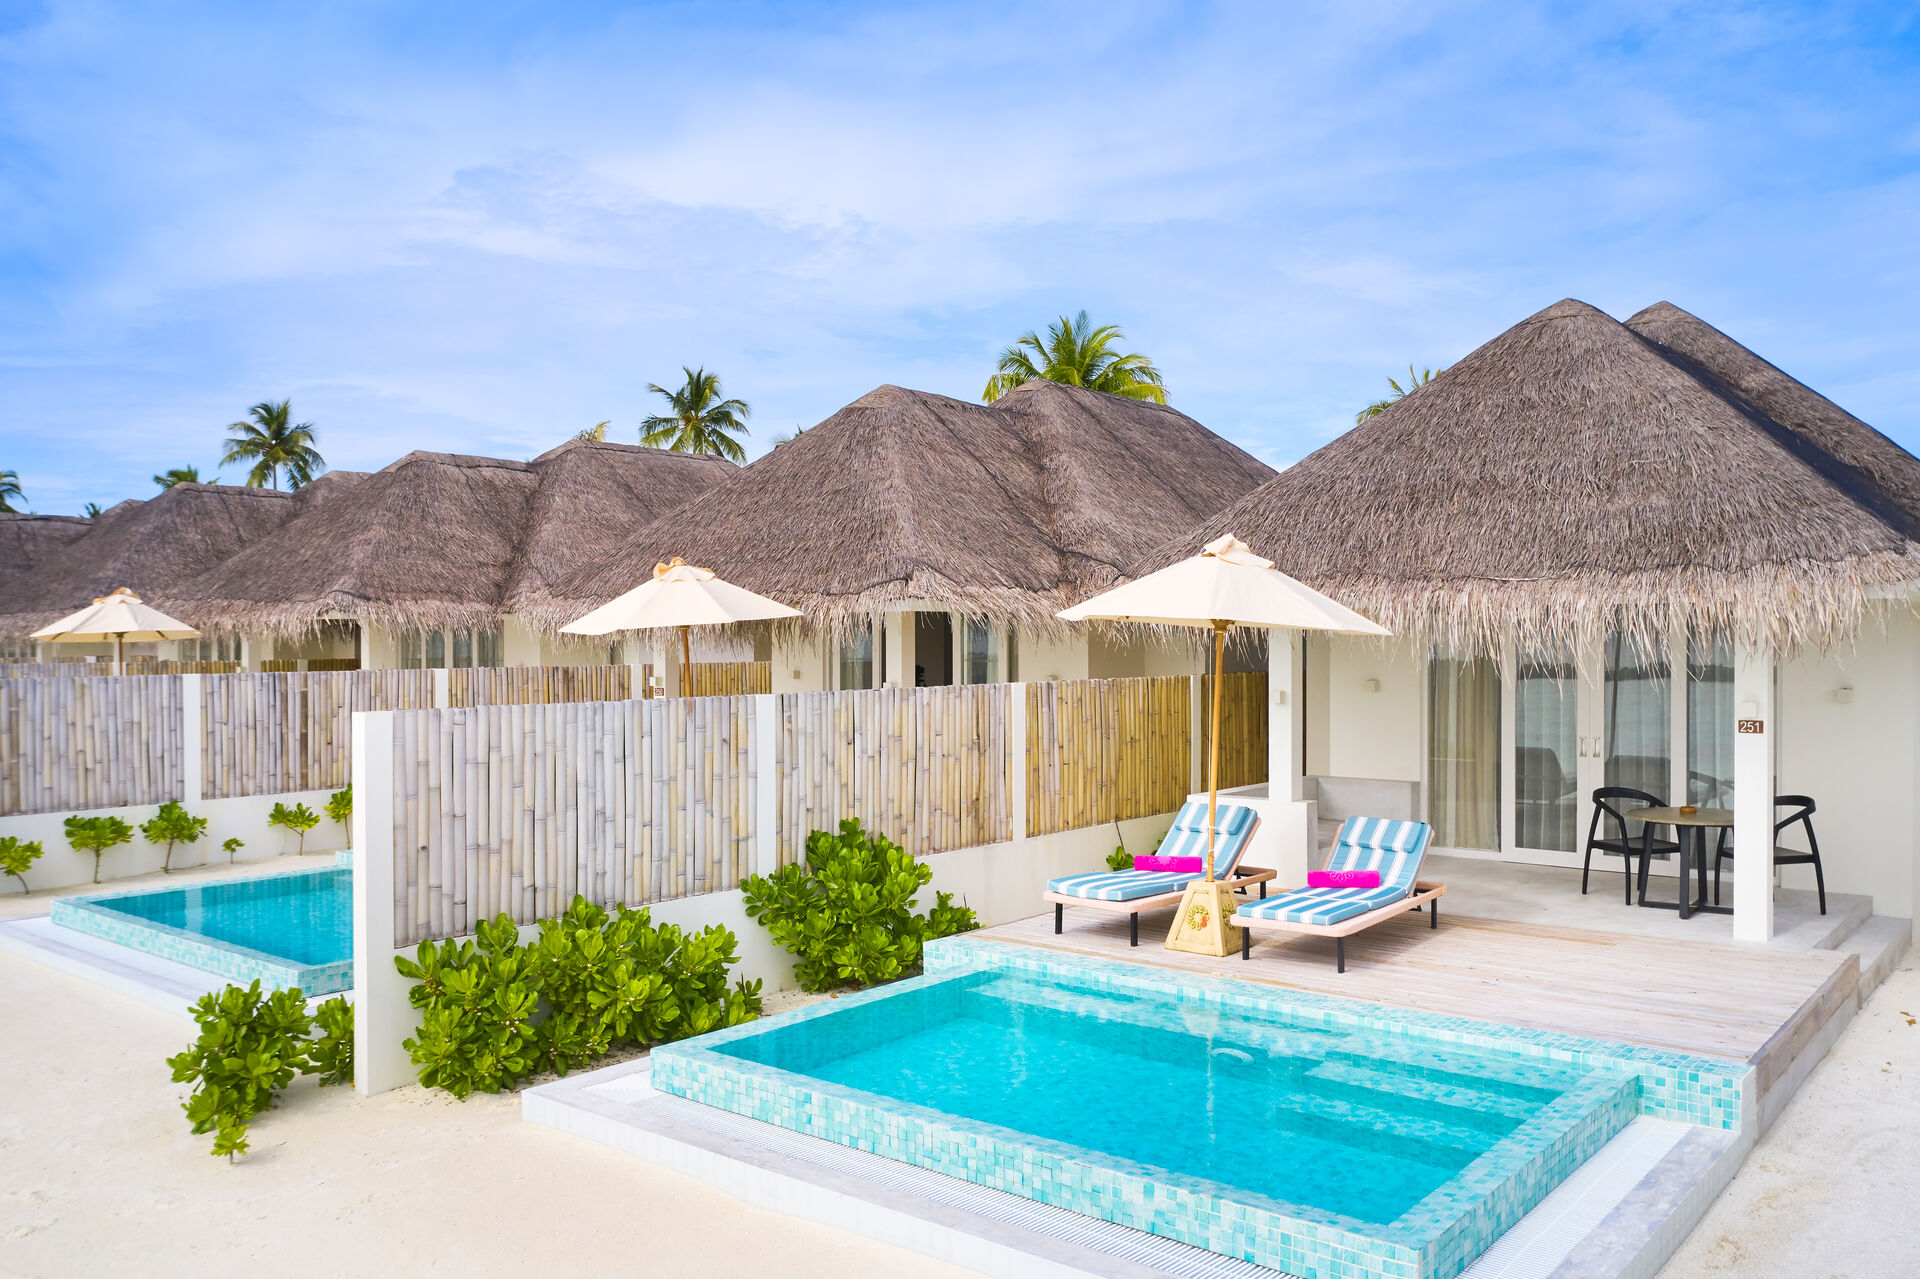 https://cms.satur.sk/data/imgs/tour_image/orig/iruveli_beach_suite_with_pool_0195-1939700.jpg